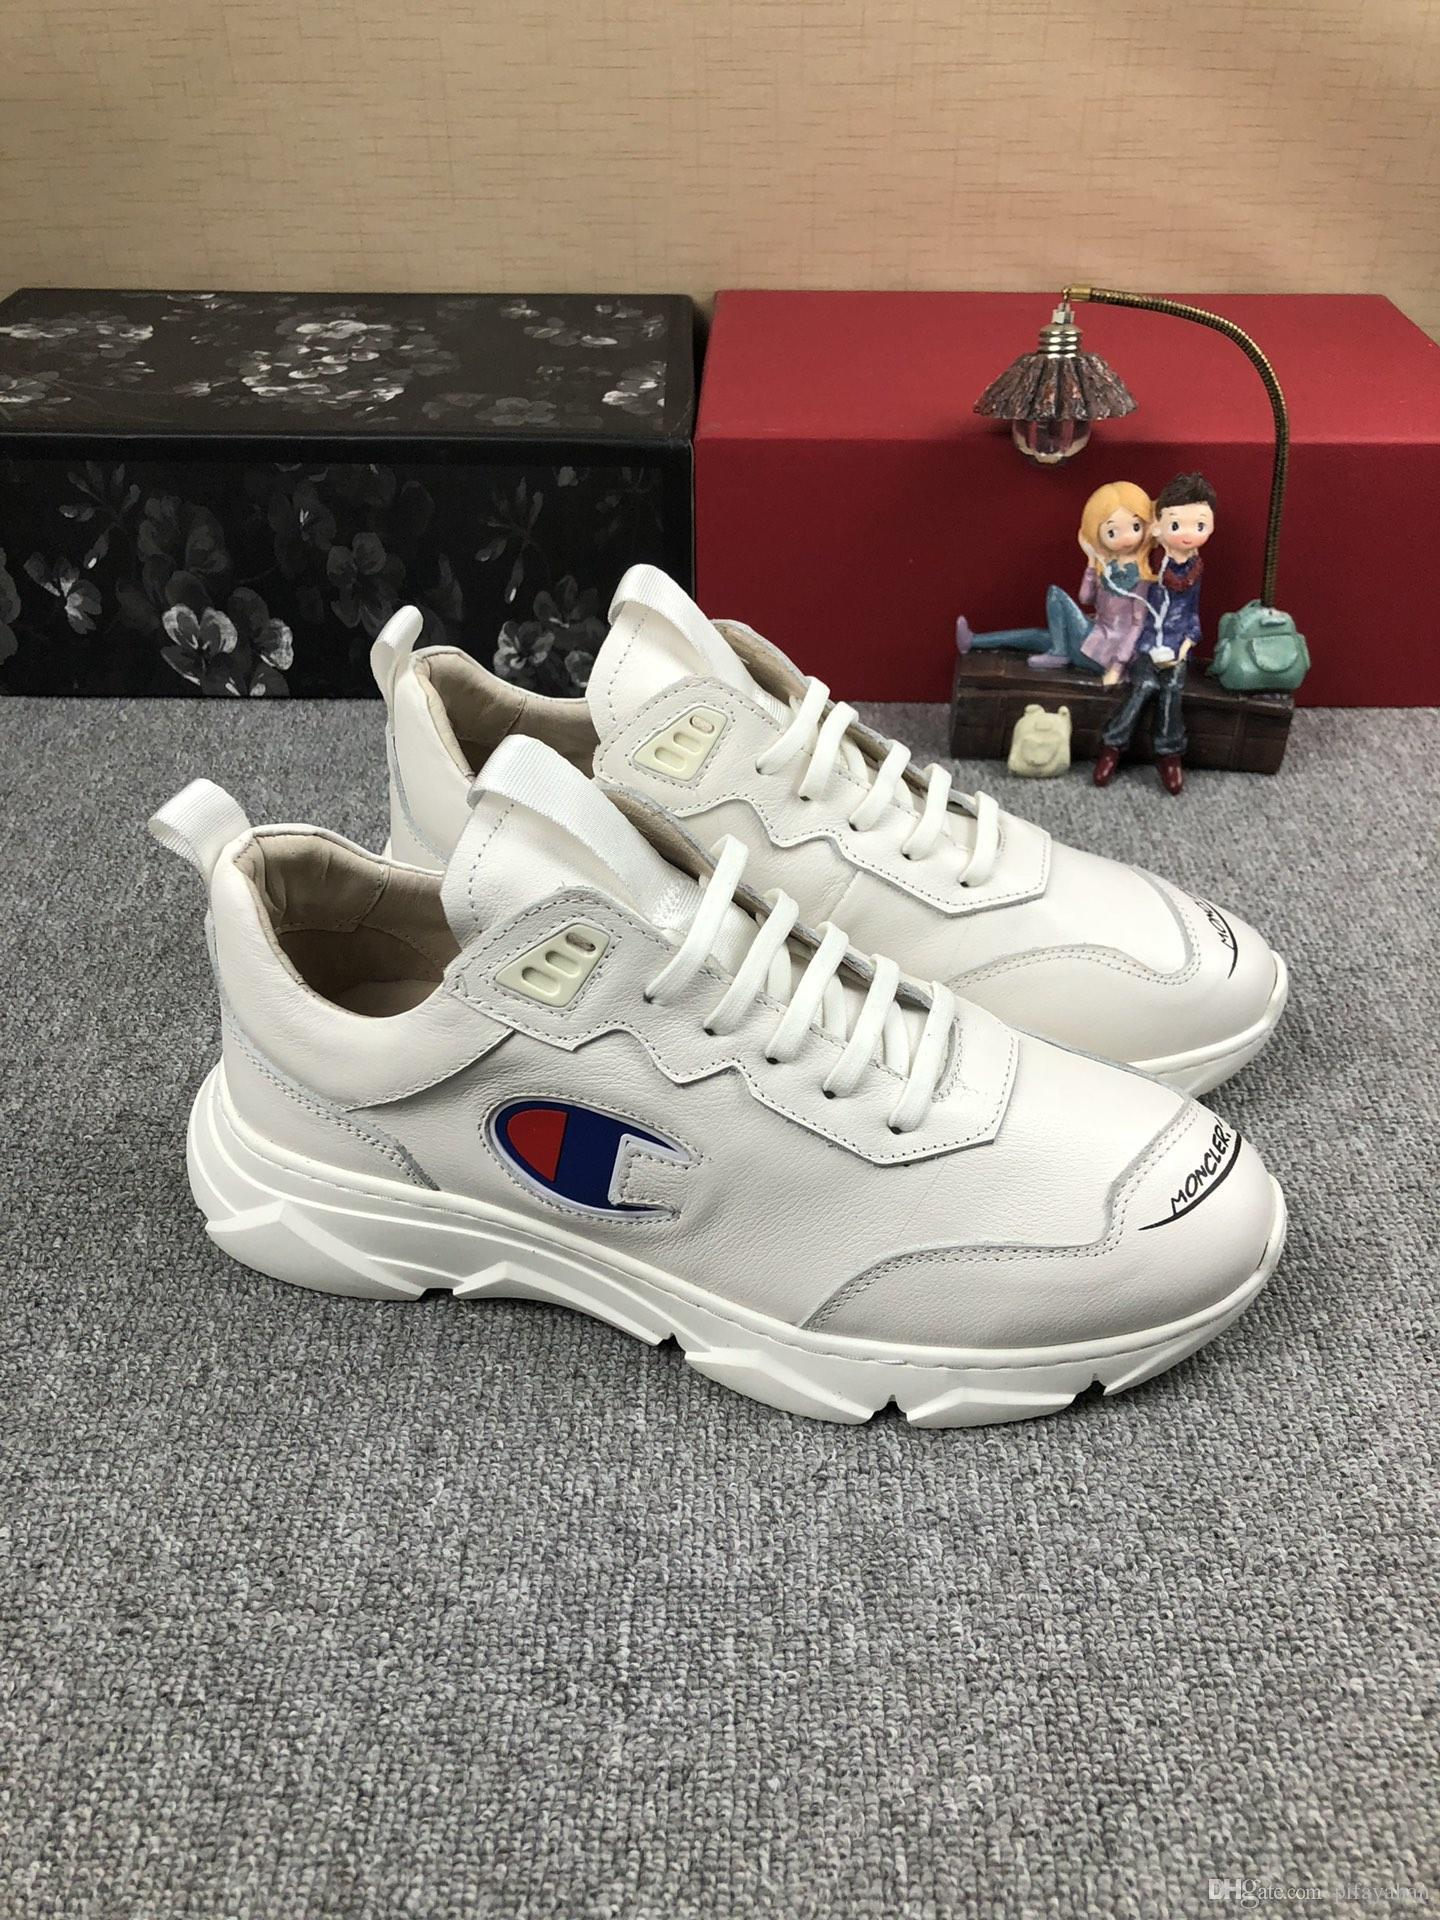 54463f668eb 2019 new low men's casual shoes comfortable breathable outdoor sports shoes  classic white running shoes DHL fast delivery